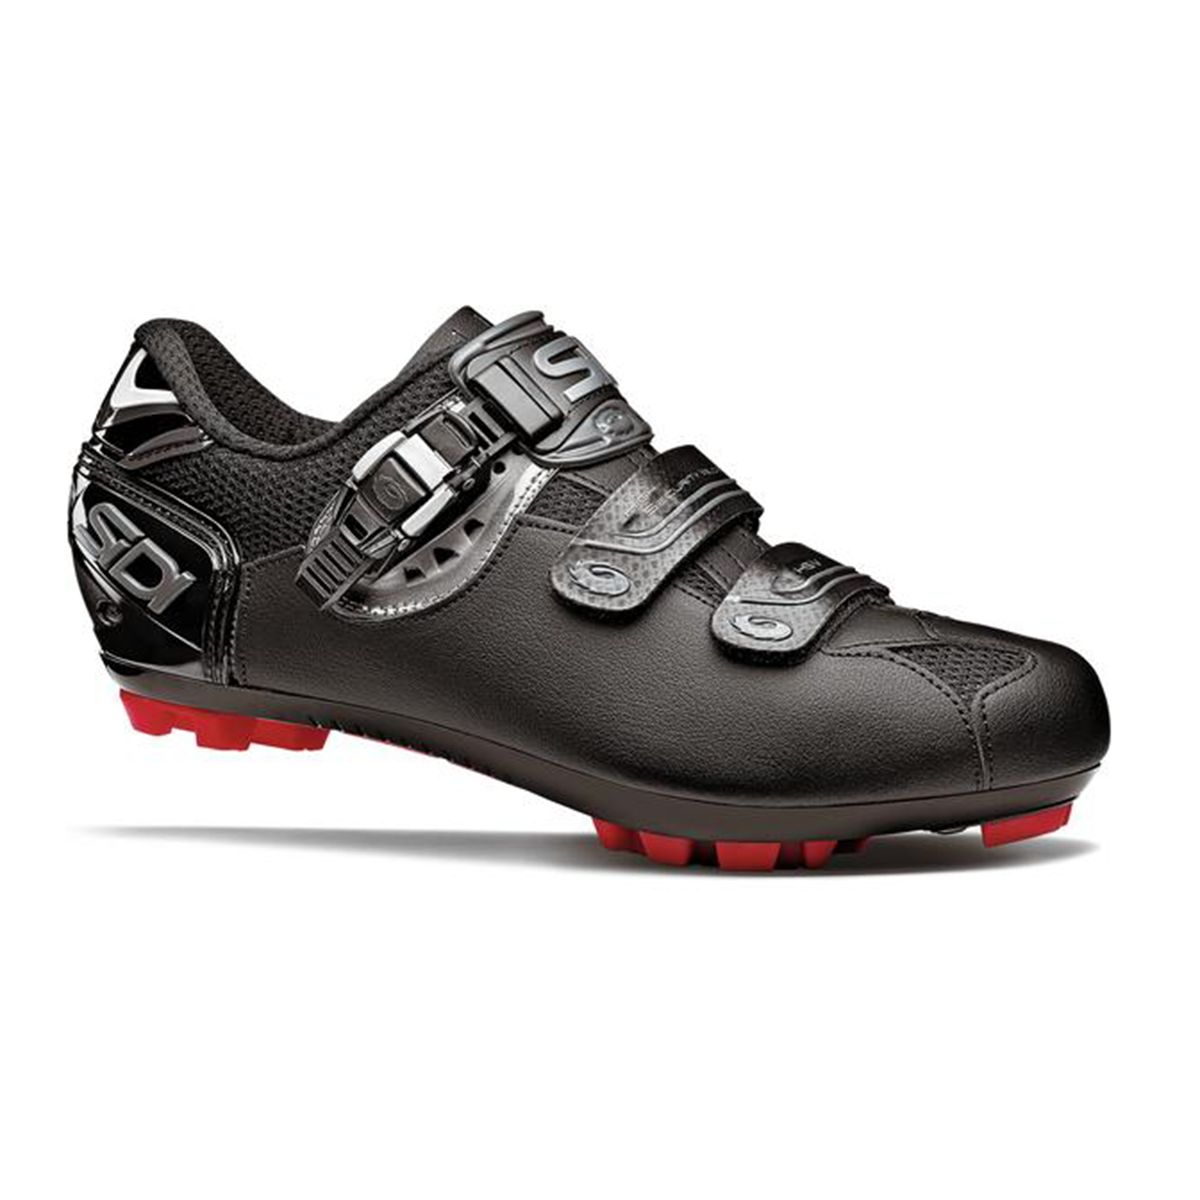 EAGLE 7 SR MEGA MTB shoes